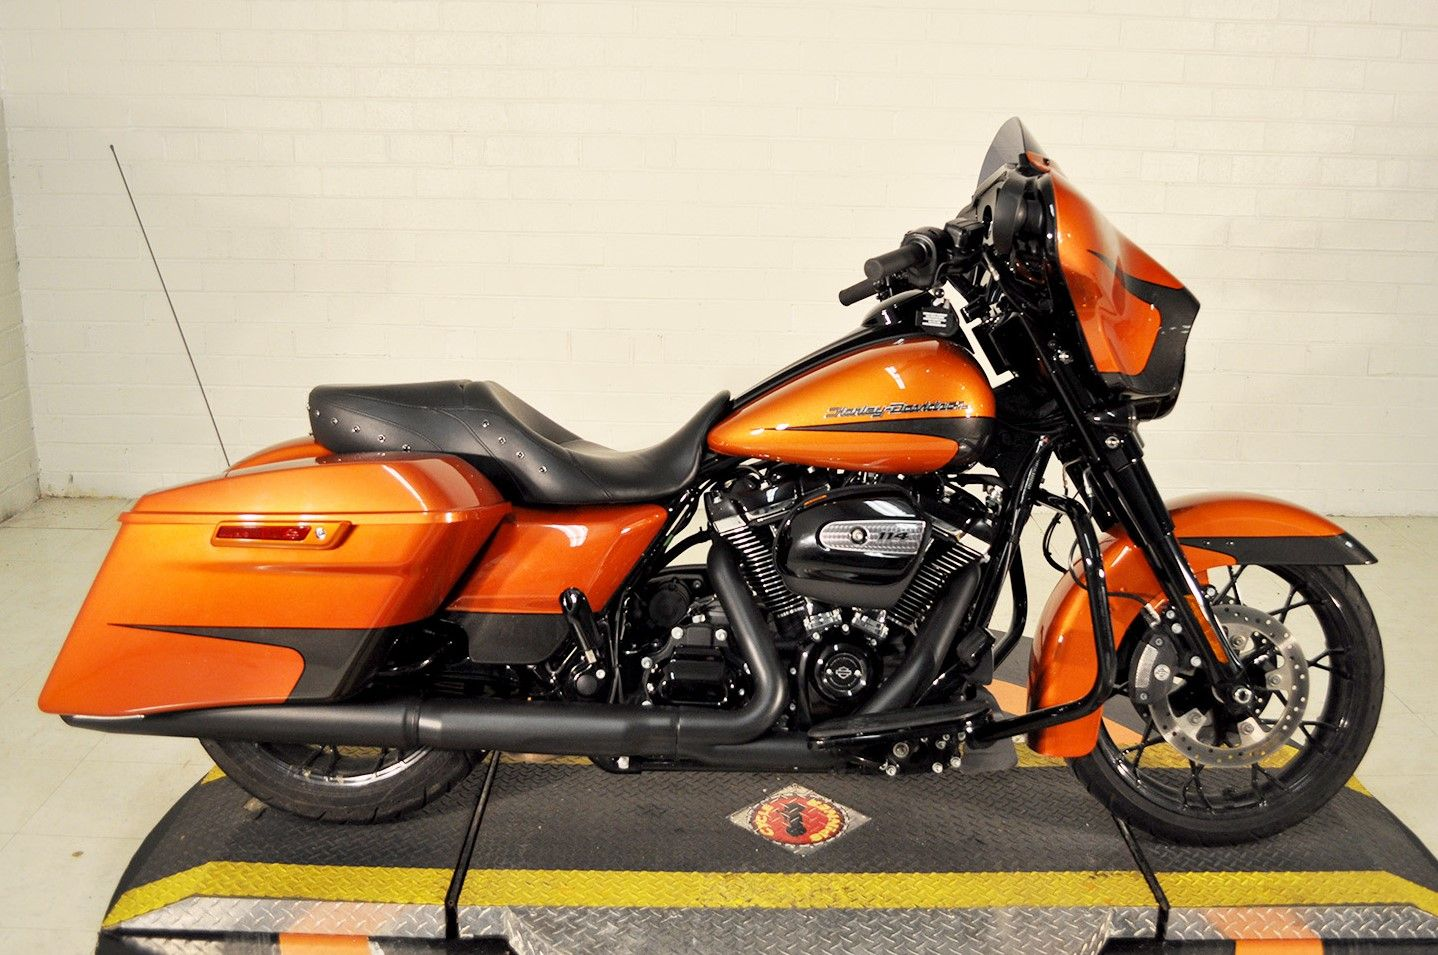 Pre-Owned 2020 Harley-Davidson Street Glide Special